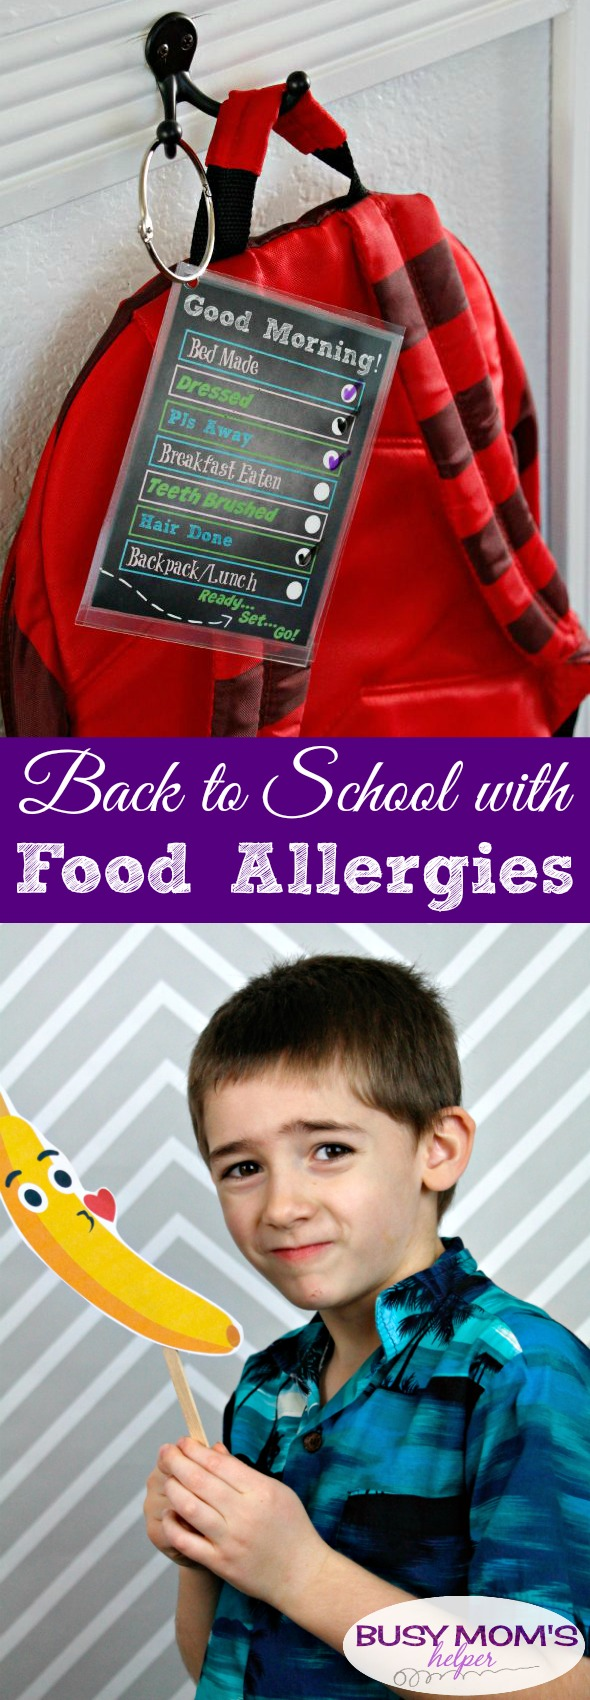 Back to School with Food Allergies / What you need to know about the safety measures the school nutrition programs take to keep kids with food allergies safe at school #AD #ANC18 #schoollunch